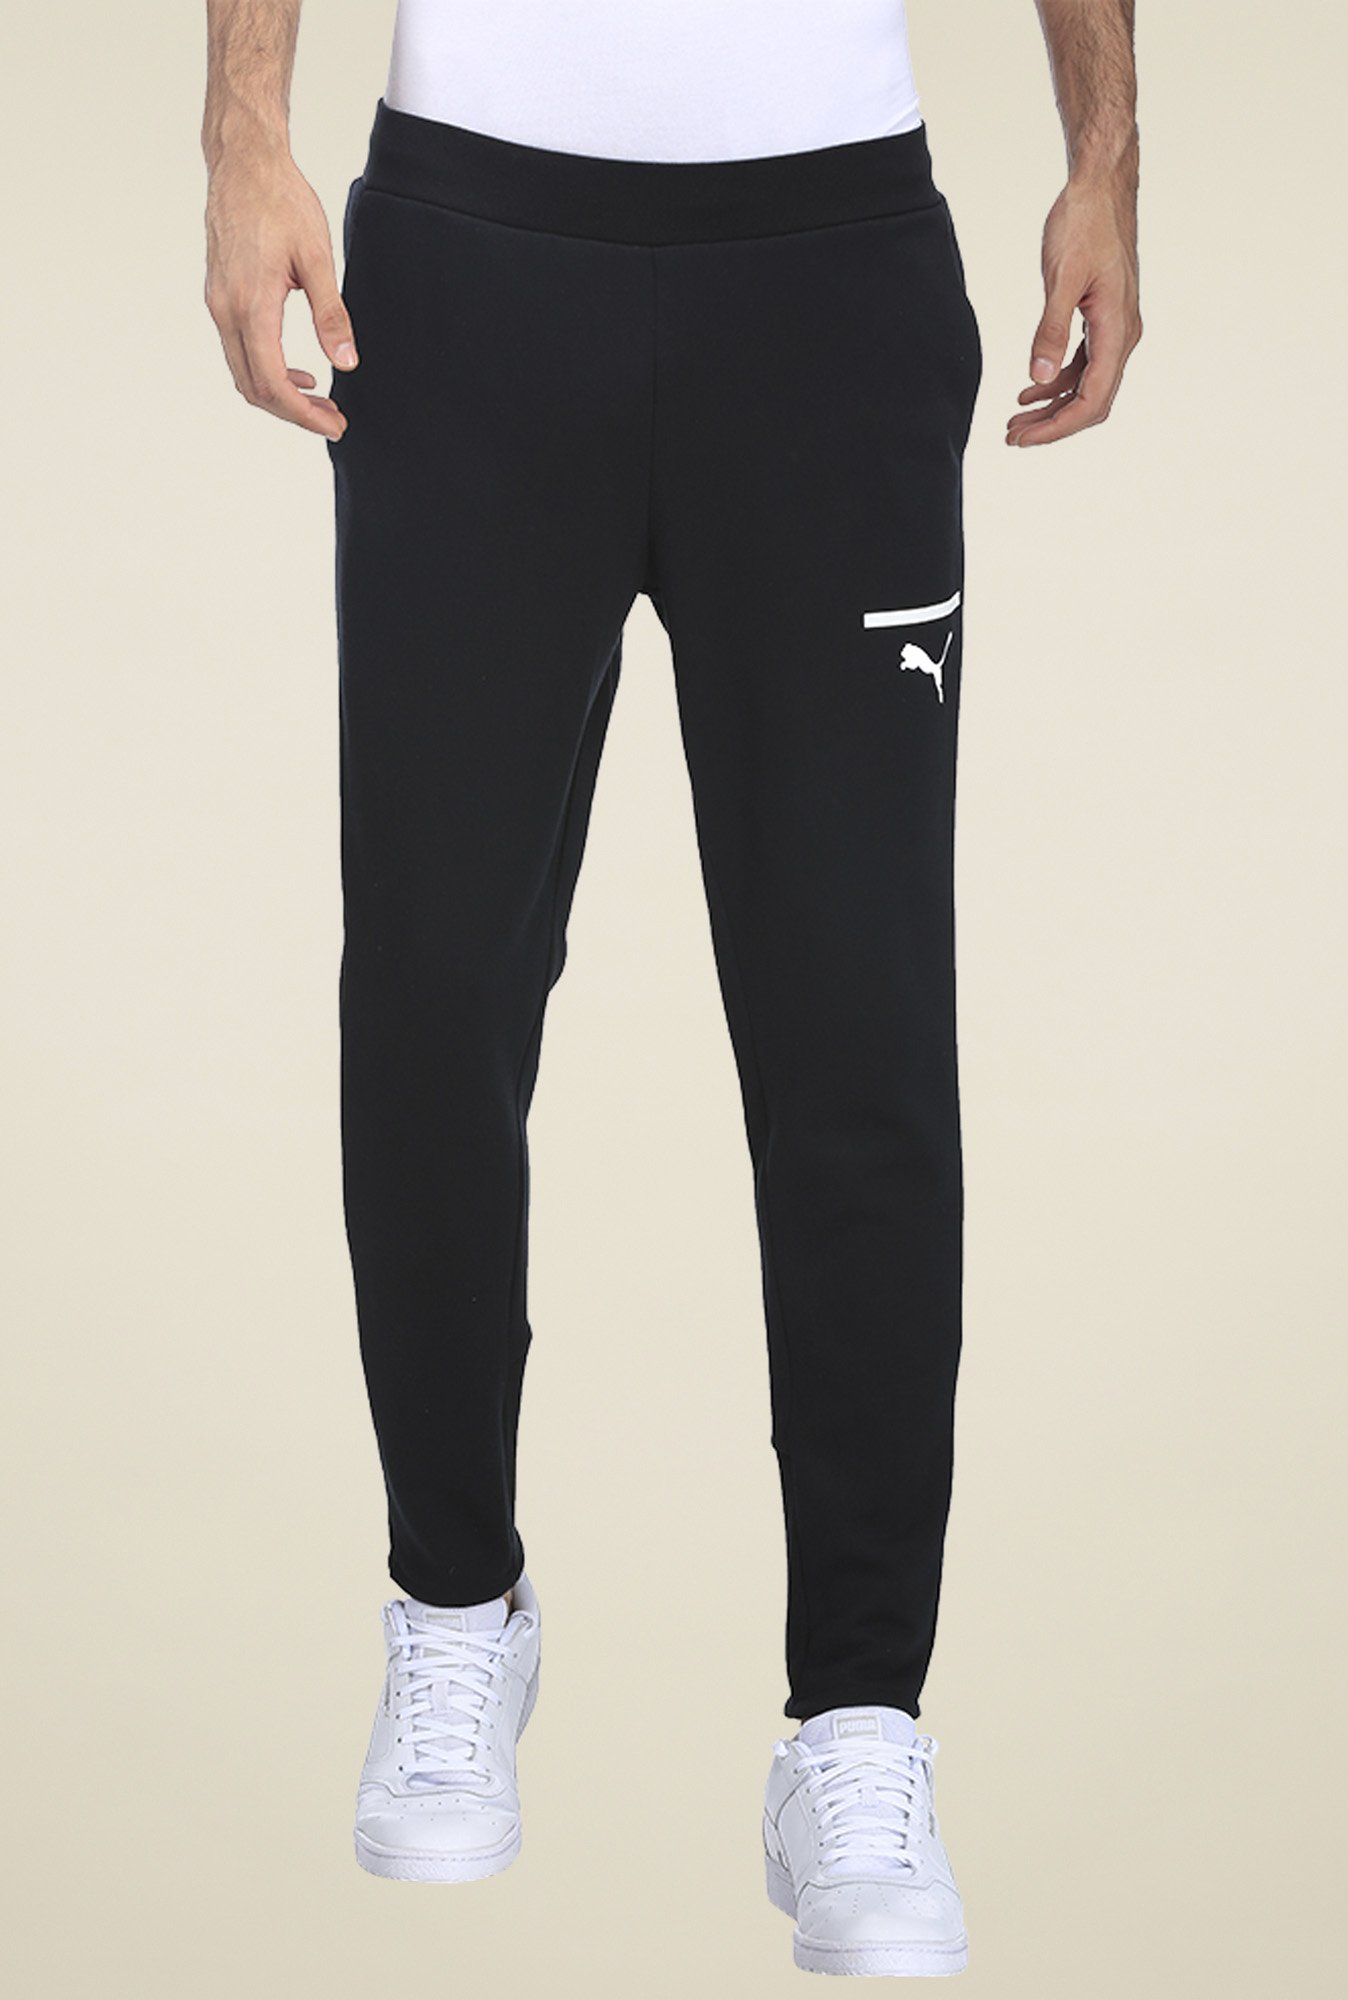 0d1e8ef497b3 Buy Puma Black Regular Fit Track Pants for Men Online   Tata CLiQ